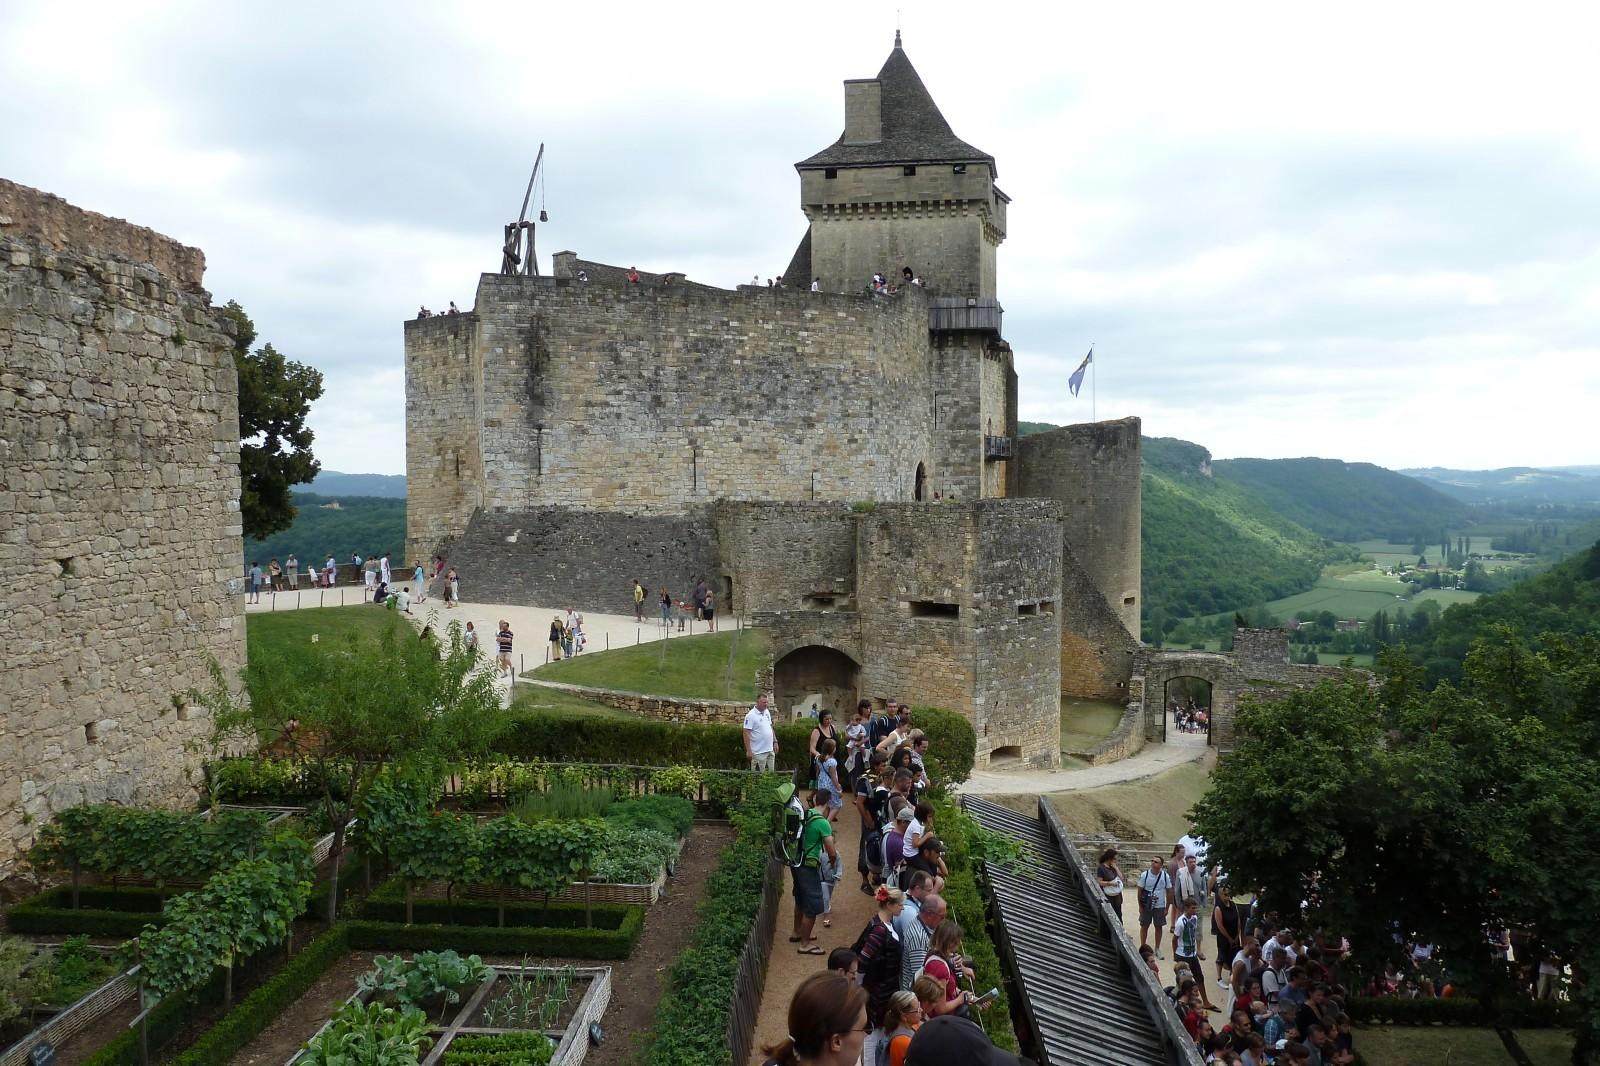 The Castelnaud Castle – Castelnaud-la-Chapelle